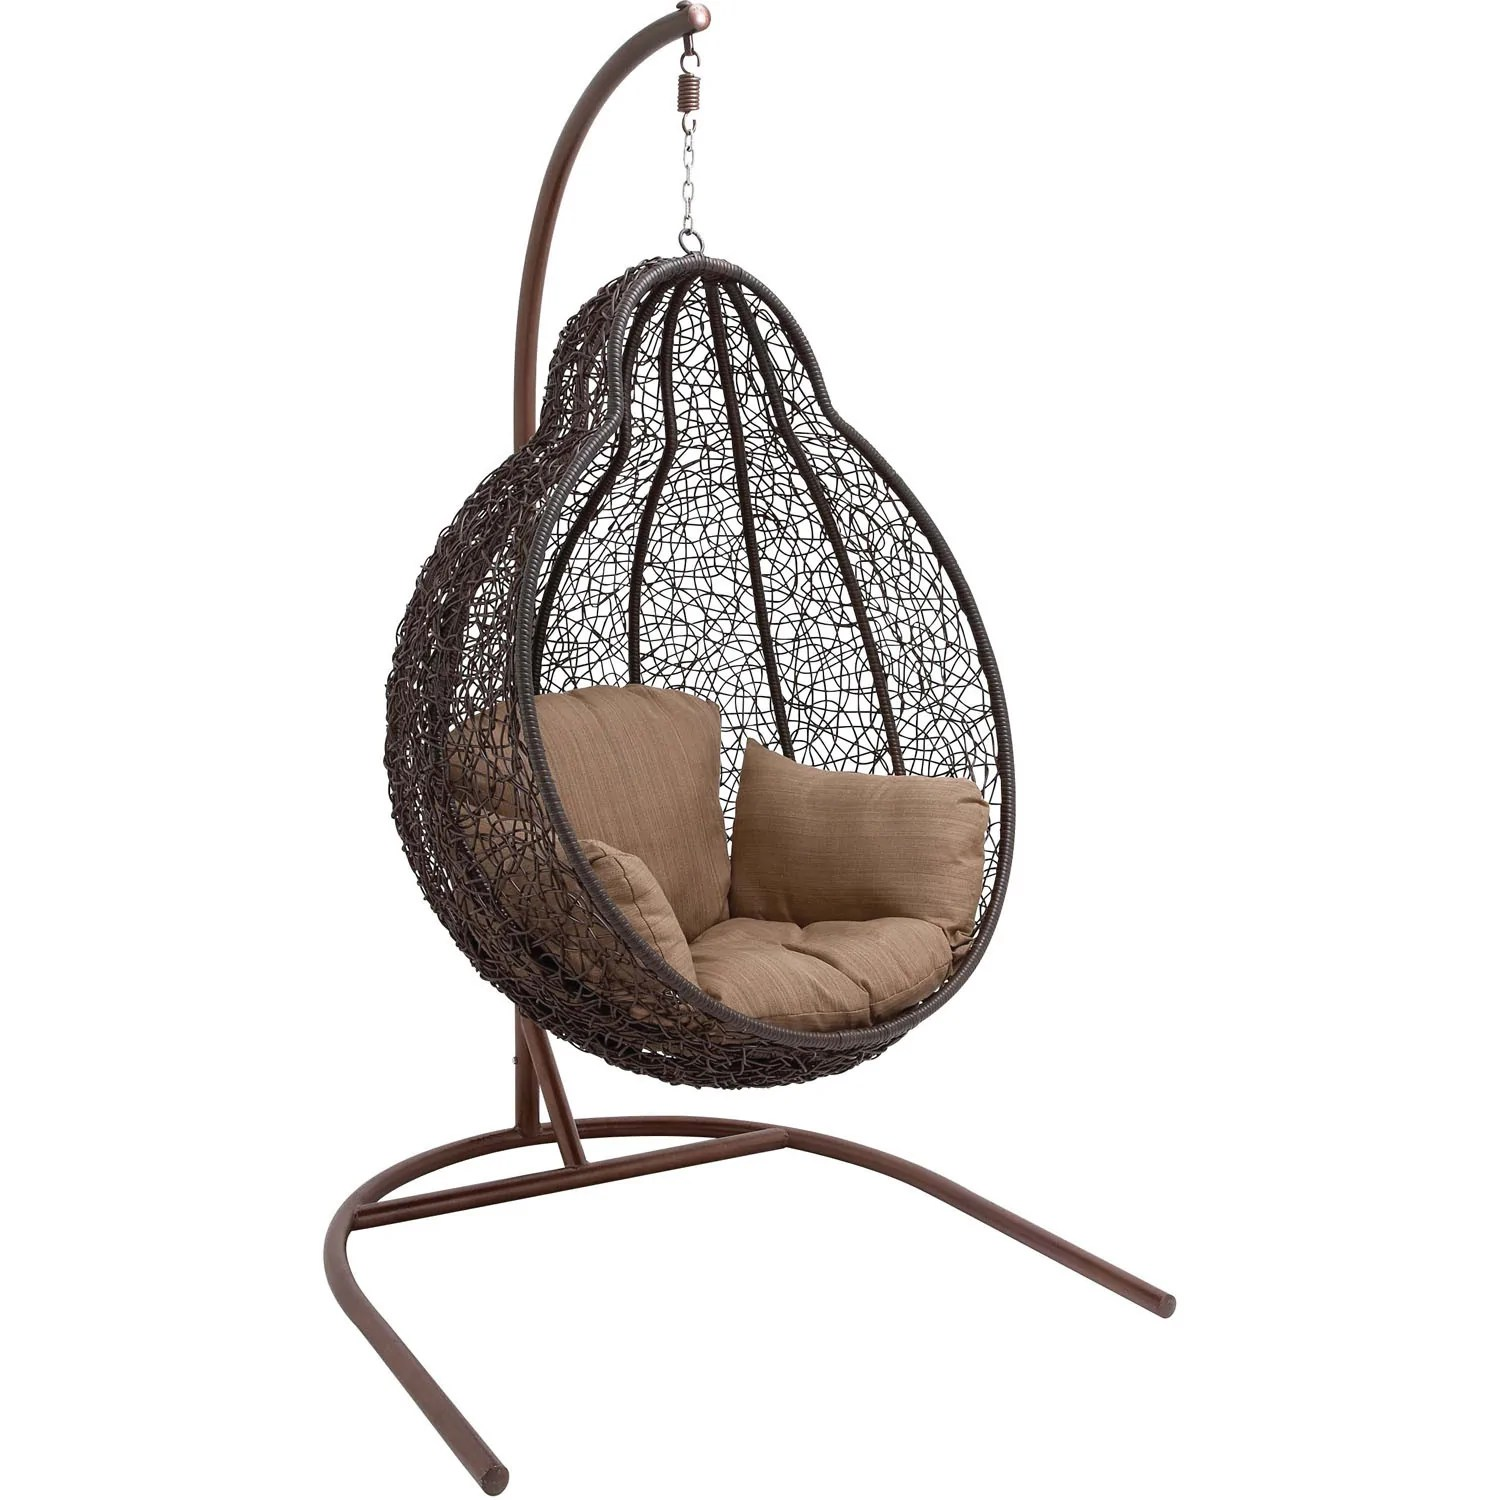 Cheap Hanging Egg Chair Hanover Outdoor Wicker Rattan Hanging Egg Chair Swing Egg Swing04